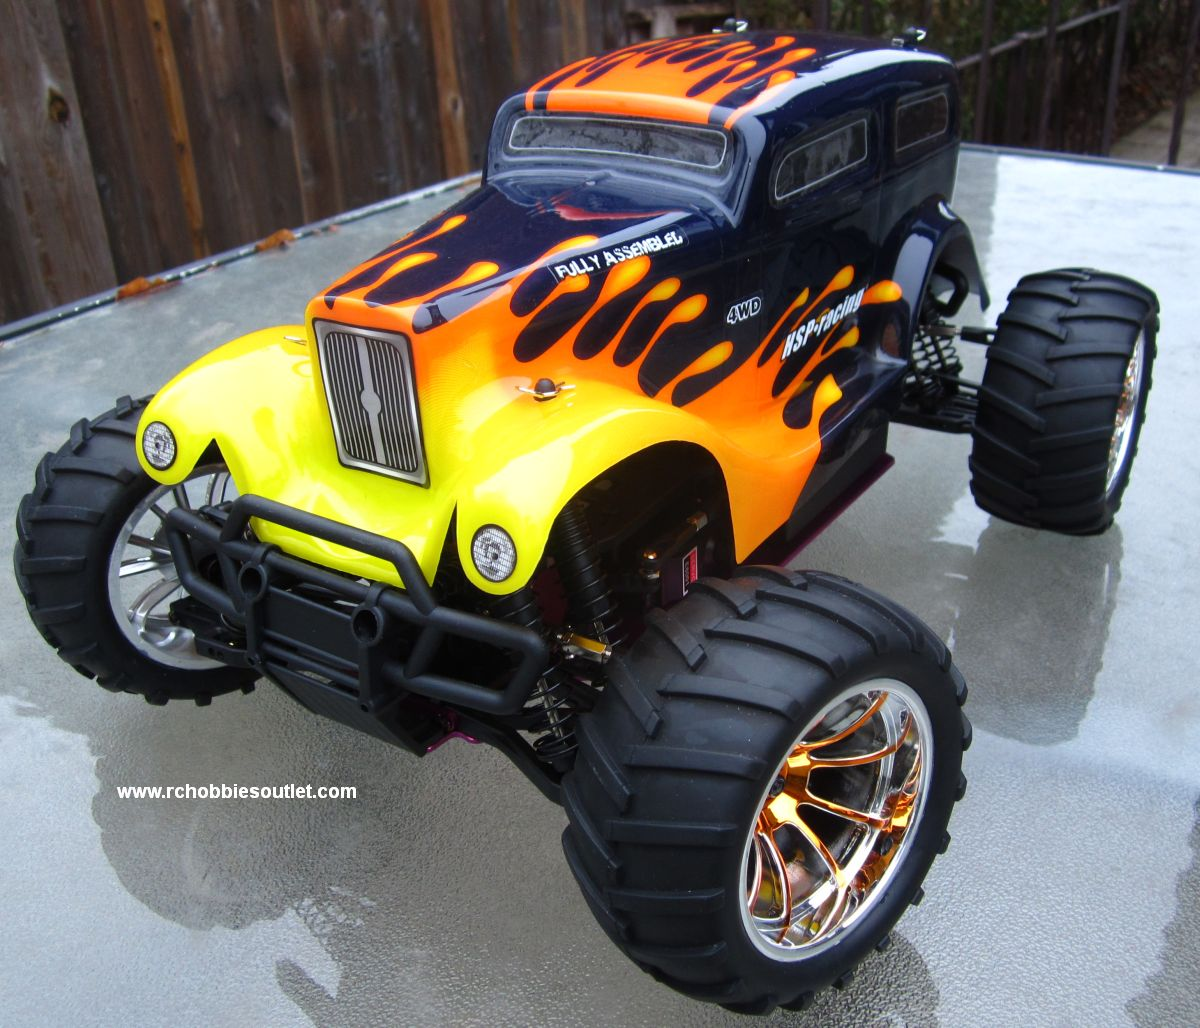 Hsp Rc Truck Nitro Gas Power Off Road Monster Truck 94188: RC NITRO GAS MONSTER TRUCK HSP 1/10 CAR 4WD RTR 88046